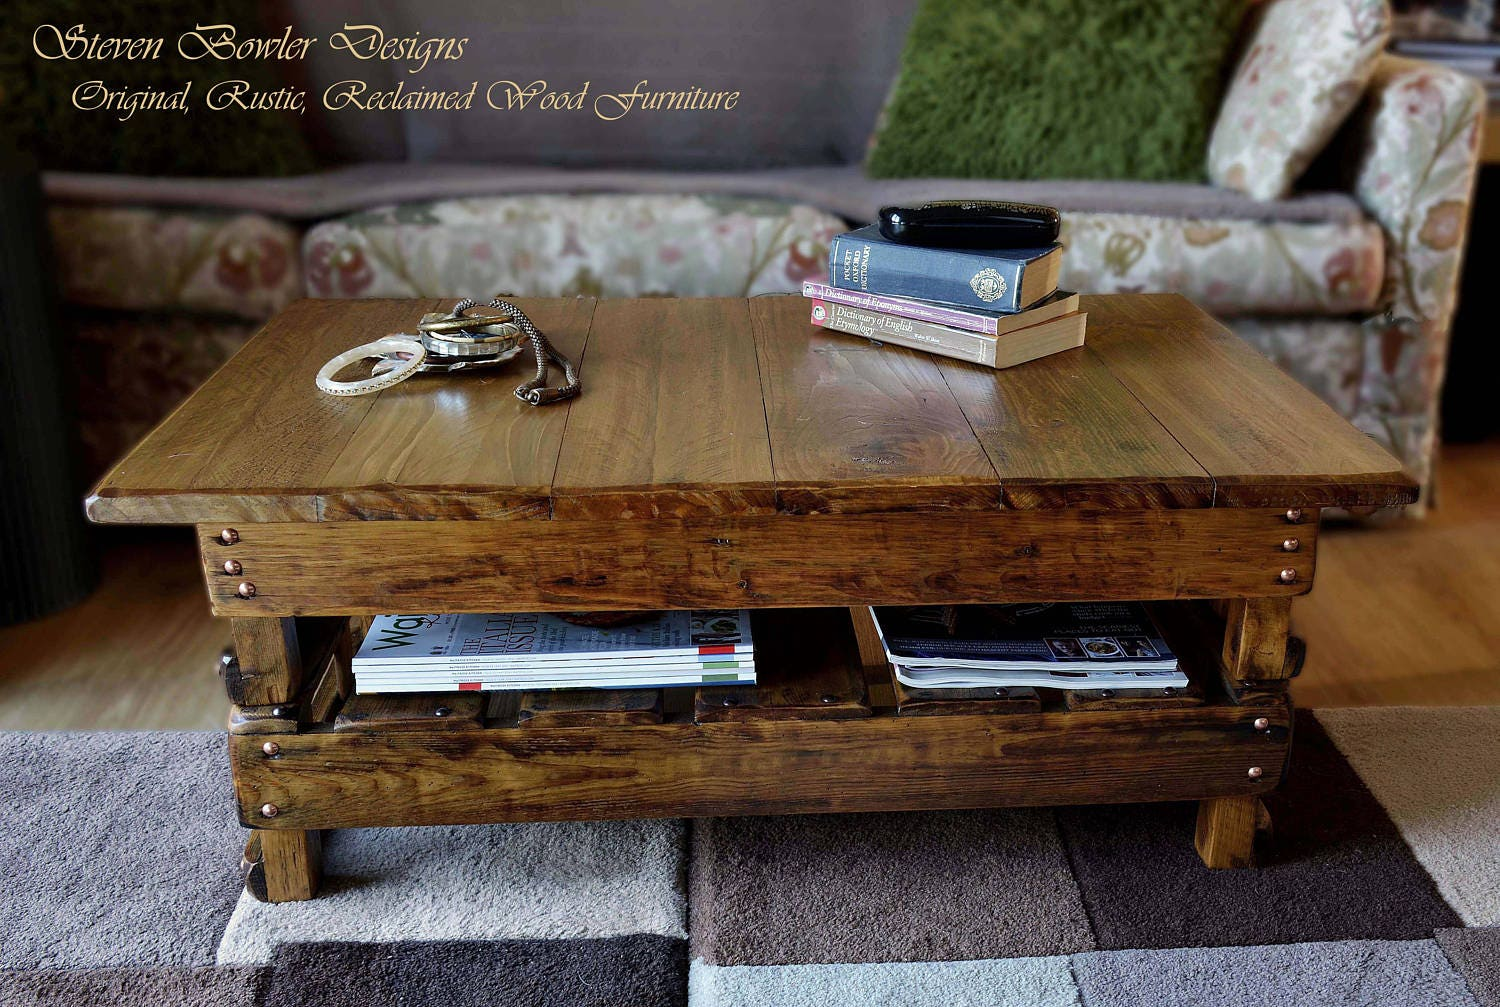 CUSTOM ORDER for Sharon 20 Deposit for a Bespoke Country Cottage Style Coffee Table 90 cm x 90 cm x 40 cm